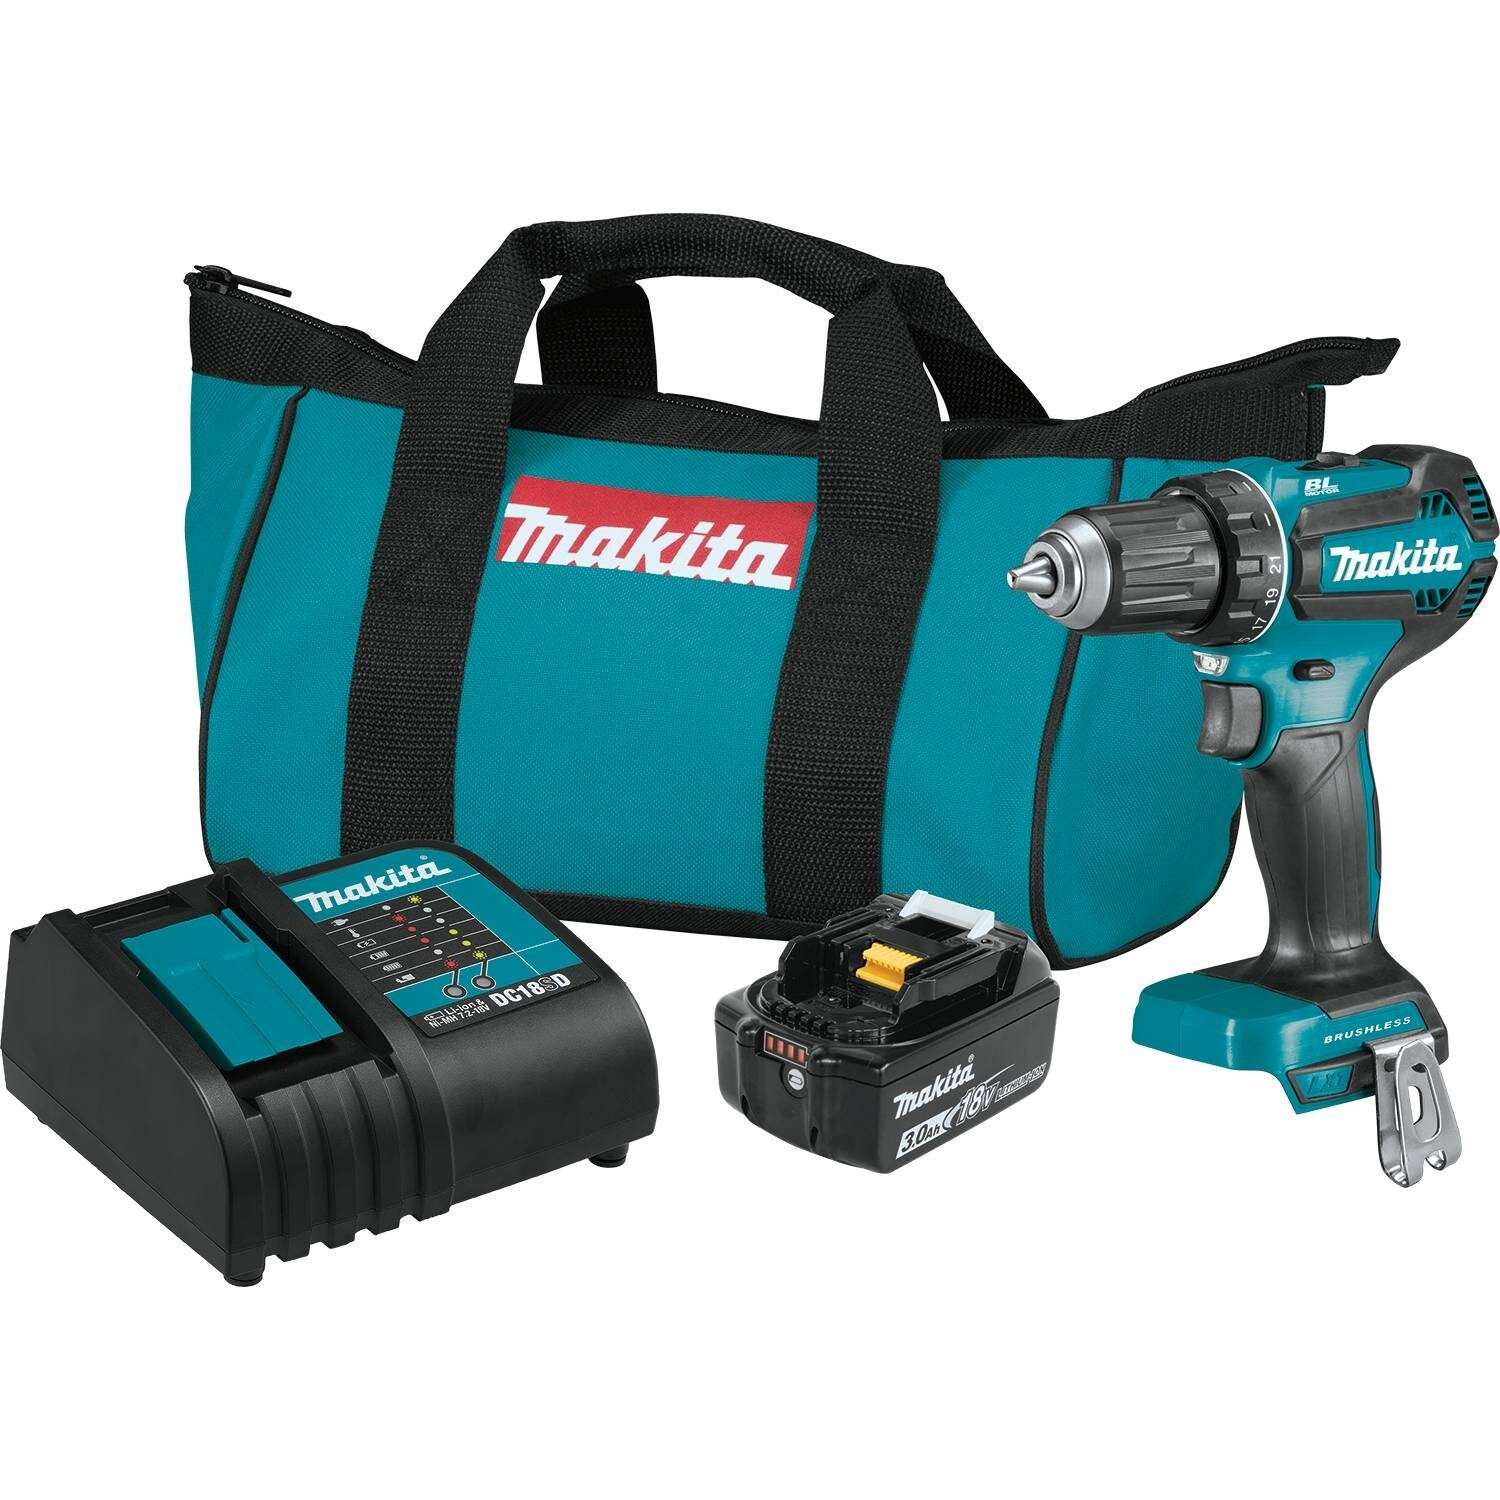 Makita  18 volt 1/2 in. Brushless  Cordless Drill Driver  Kit (Battery & Charger)